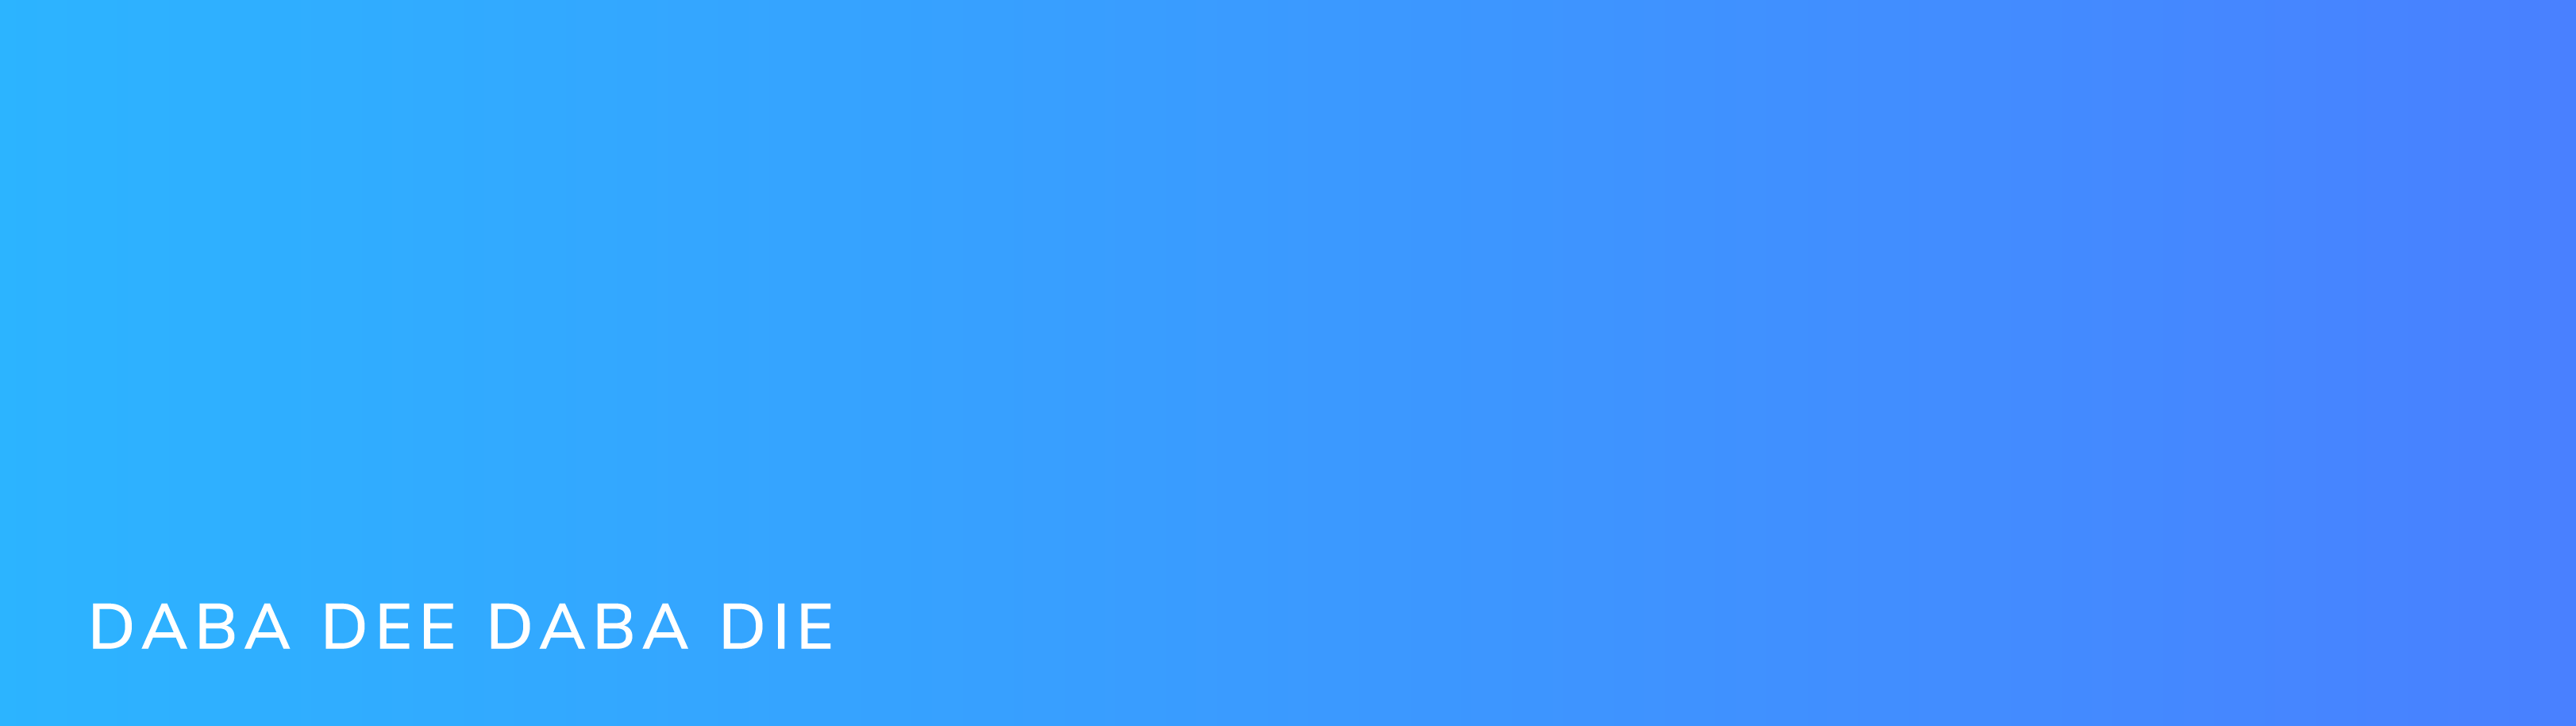 Our brand gradient called daba dee daba die (like the song). It is a subtle gradient showing a bright light blue shifting to a cooler, slightly darker light blue.